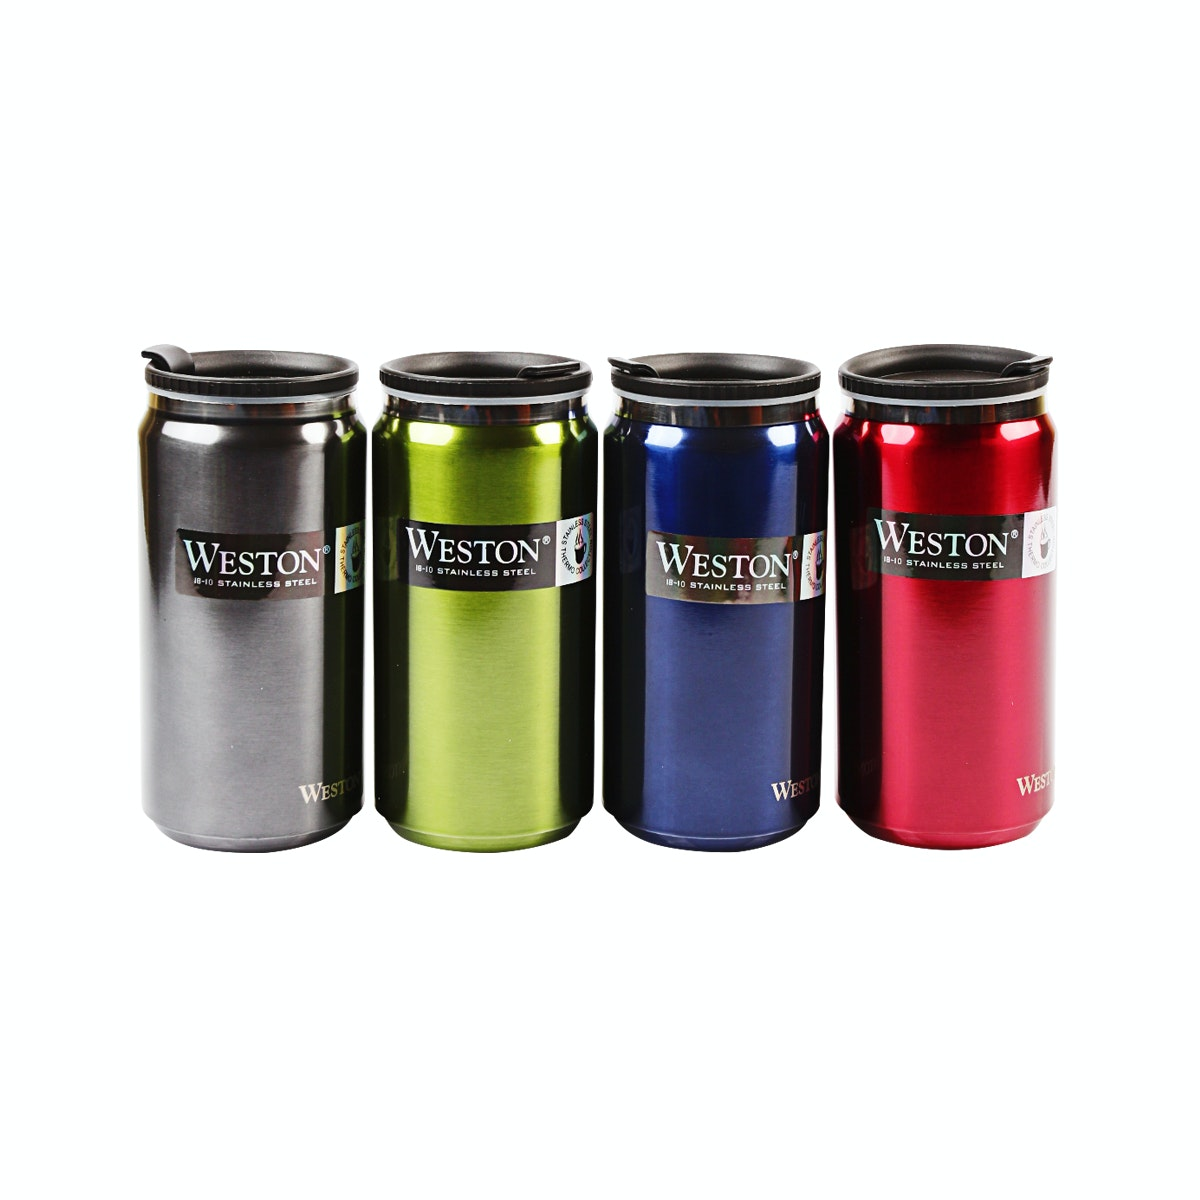 Weston Tumbler Soda Mug 300ML